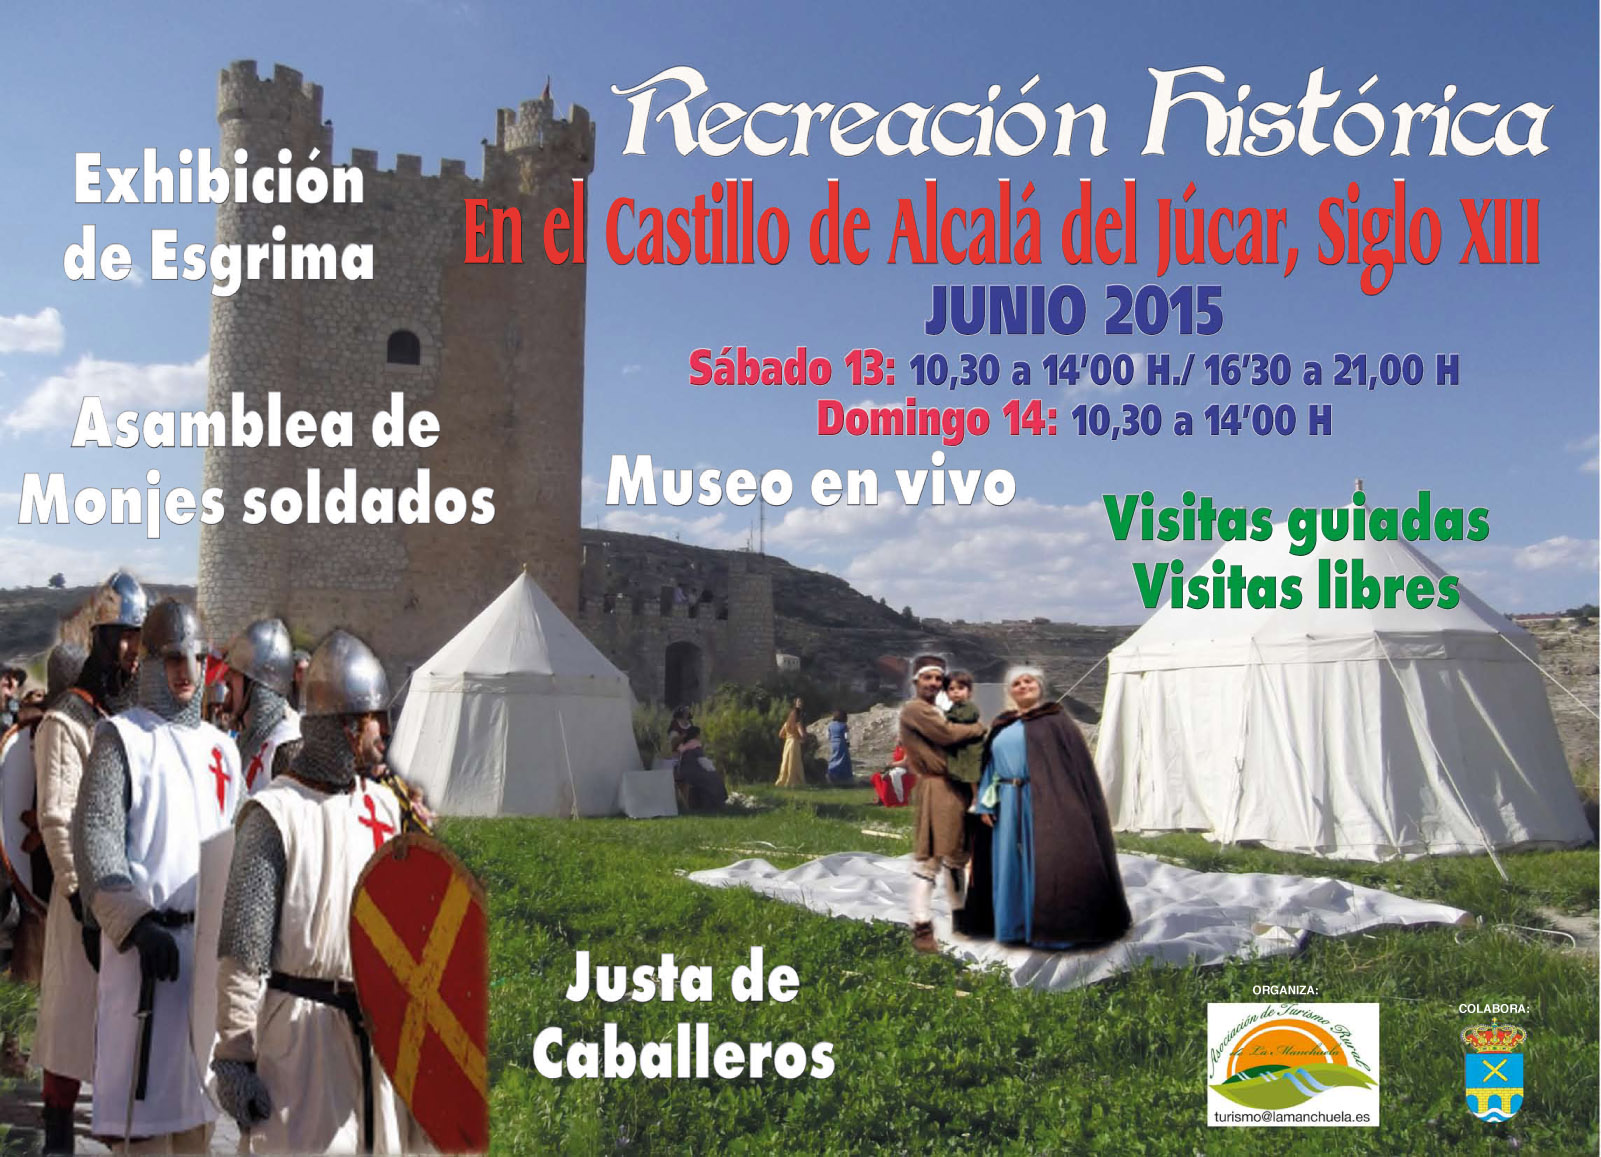 RECREACION HISTORICA ALCALA DEL JUCAR